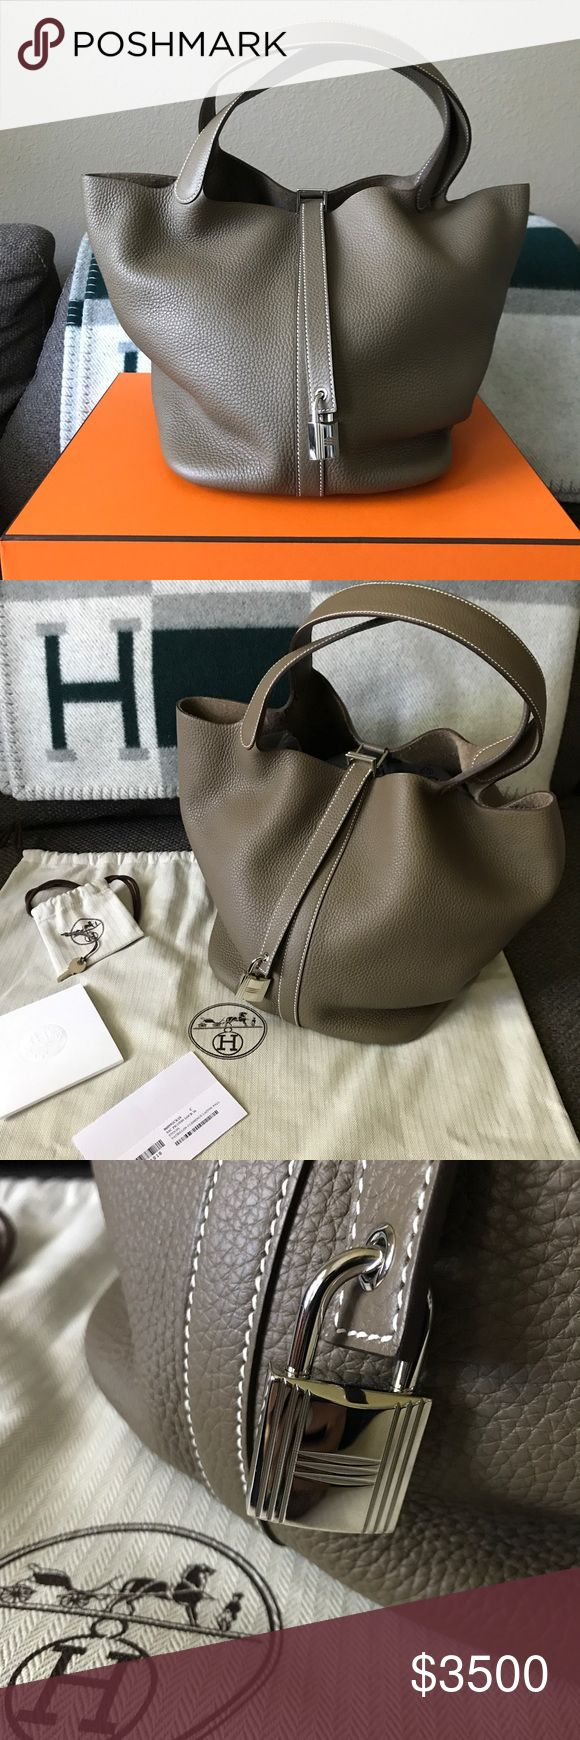 """Authentic Hermes Picotin Lock 26 ETOUPE Authentic Hermes Picotin Bag in large size 26 Gorgeous clemence leather in taupe grey color (ETOUPE) with white stitch details.  Rare find.  Brand New never worn out / Come with original dust bag, box, lock and keys.  Purchased at the Hermes store in Asia in July 2017.  Measurement 10"""" x 10"""" x 8.5"""" Made in France  Please ask all questions before making offer / purchasing. ** modeling photo was me holding the bag when purchased at the store. I'm 5'3""""…"""